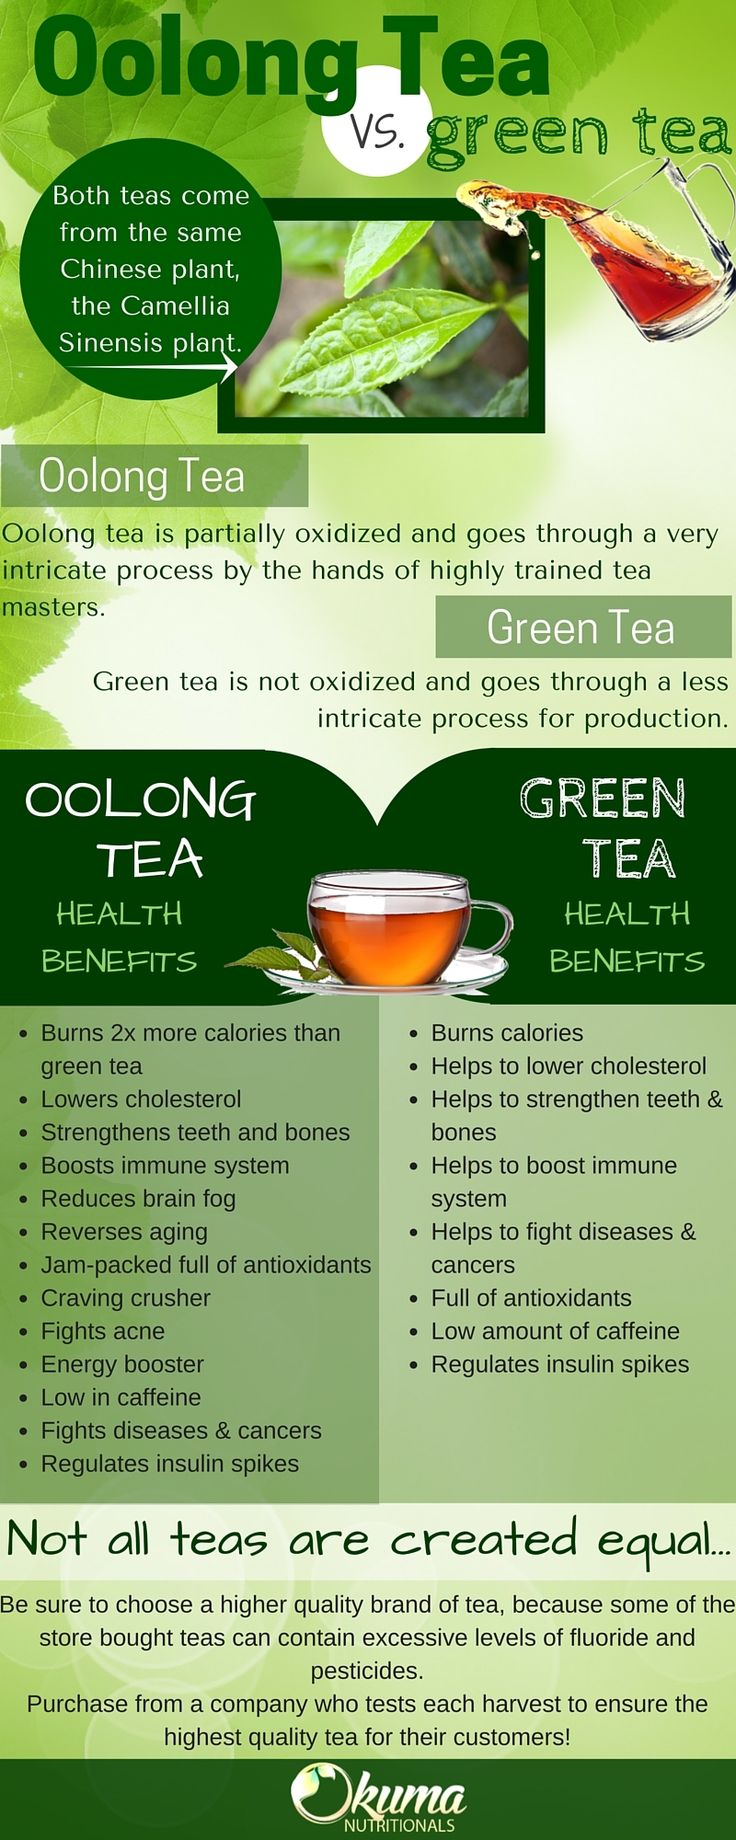 Oolong tea and green tea are similar in their health benefits, but oolong tea not only tastes WAY better...it's been shown to crush green tea in weight loss benefits! #oolongtea #weightlossbeforeandafter